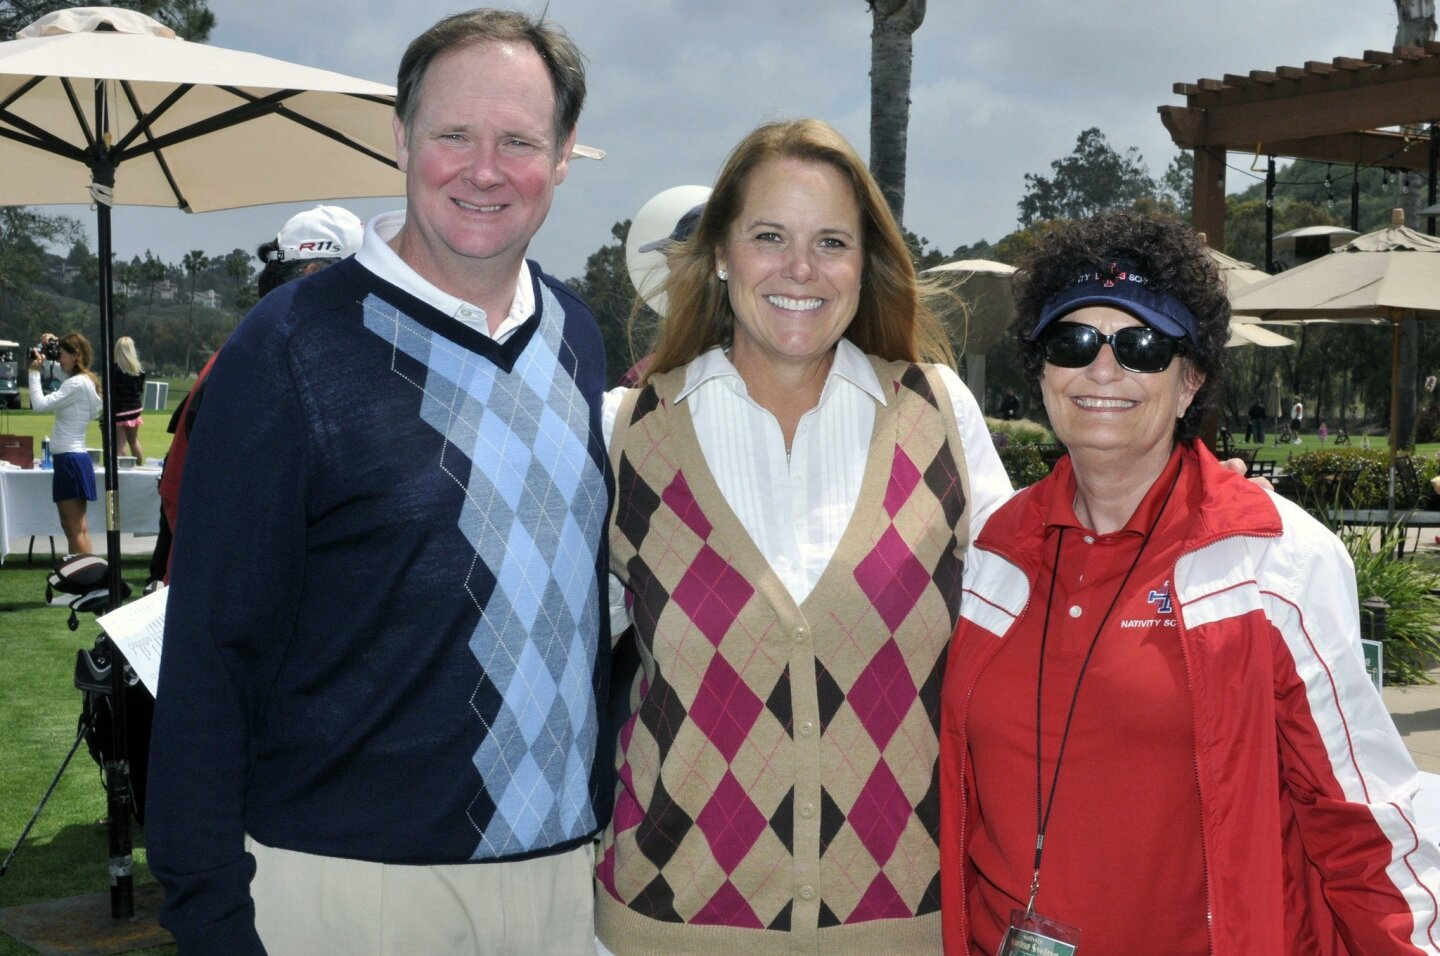 Brad and event co-chair Carrie Wilhite, Principal Margaret Heveron